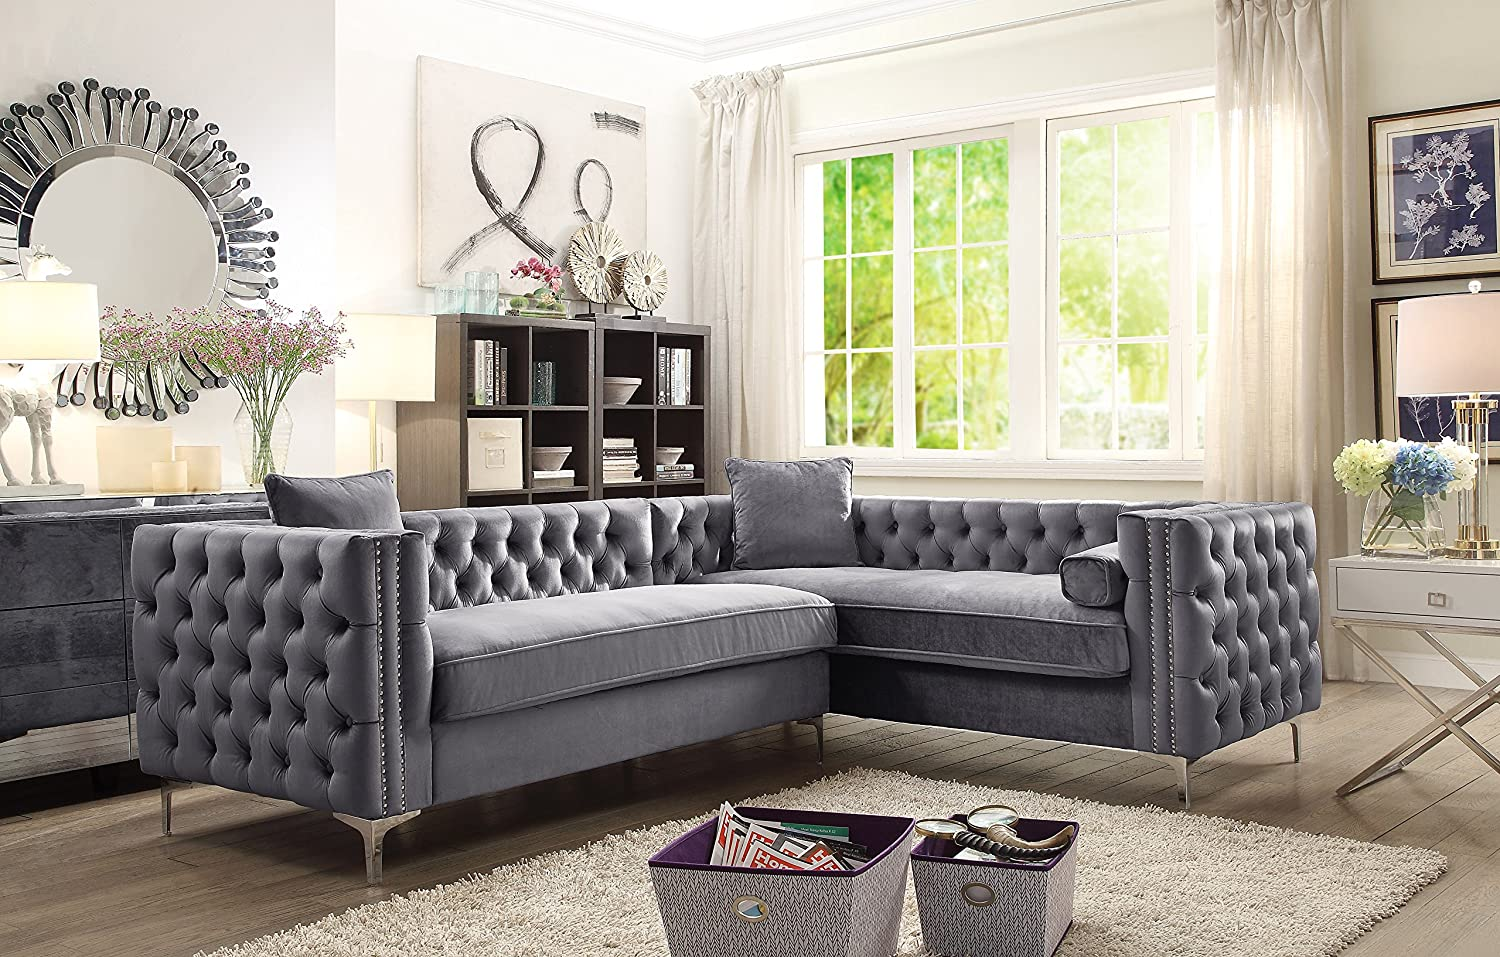 Amazon com iconic home fsa2591 an mozart elegant velvet modern deeply tufted with silver nailhead trim chrome legs right facing sectional sofa grey